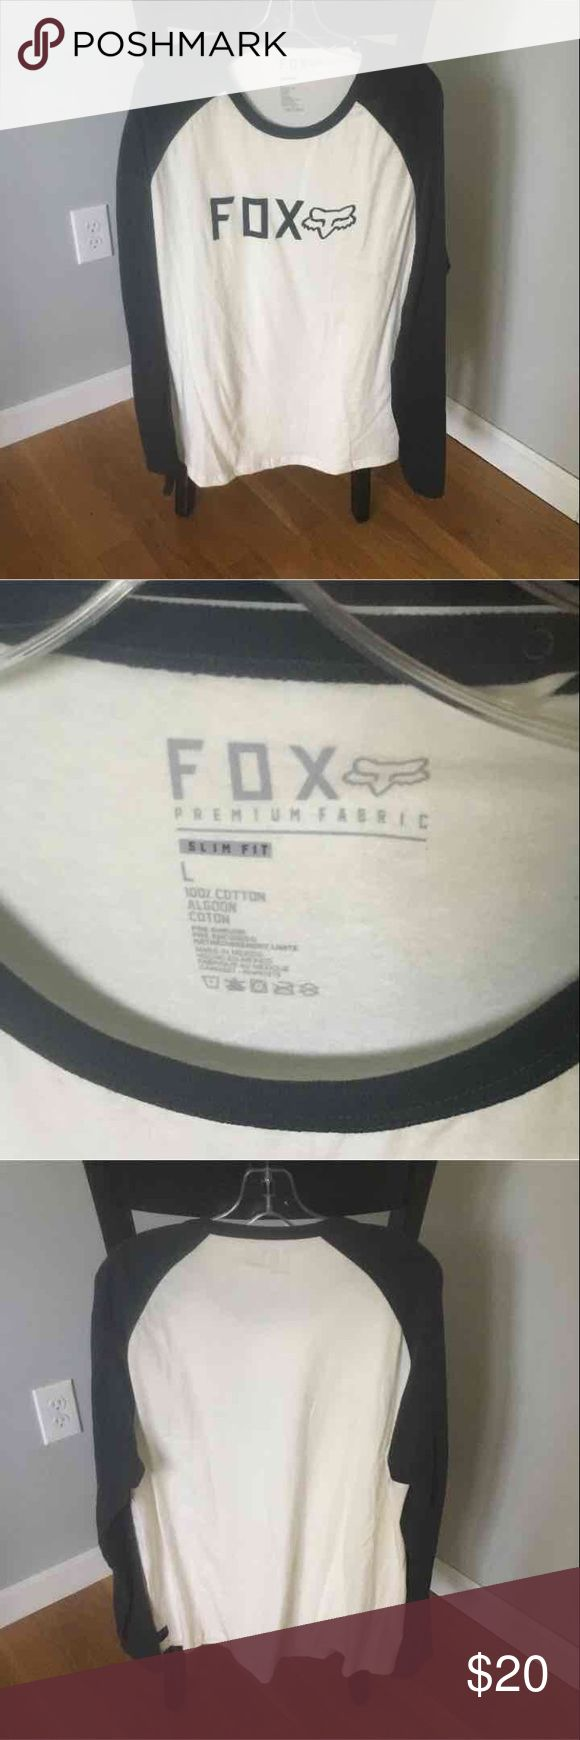 Mens fox brand long sleeve shirt Mens fox racing brand long sleeve t shirt. Size large. Never worn. Black sleeves and off white middle. Fox Shirts Tees - Long Sleeve